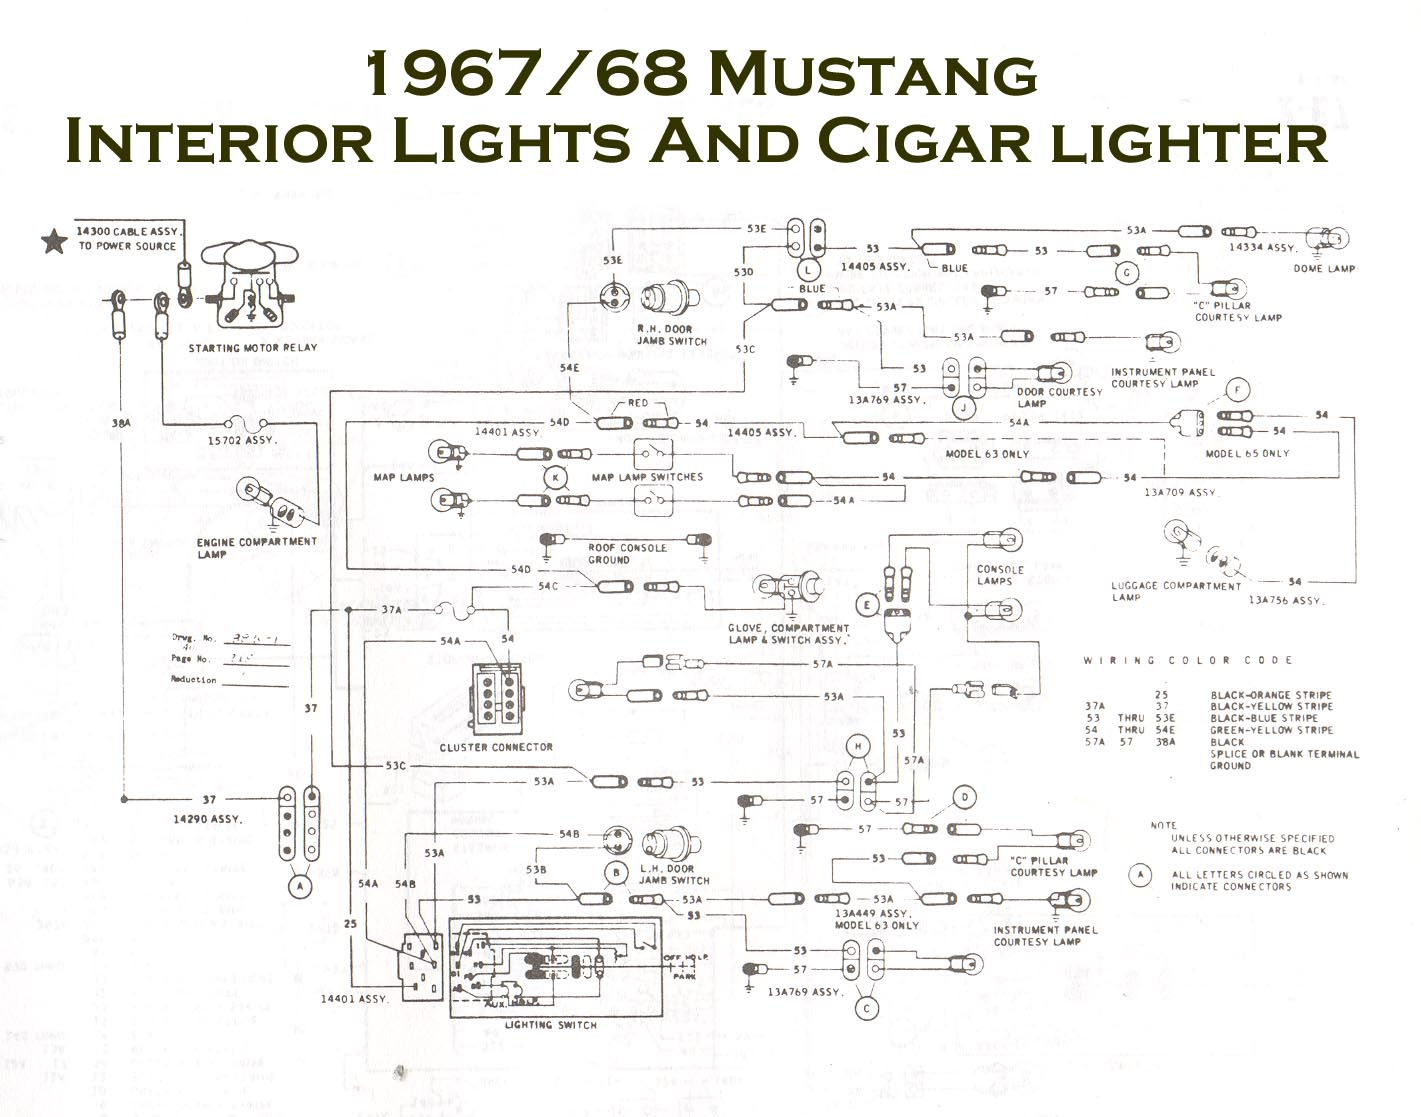 1967 68_console_wiring_diagram vintage mustang wiring diagrams 2004 volvo s40 radio wiring diagram at webbmarketing.co